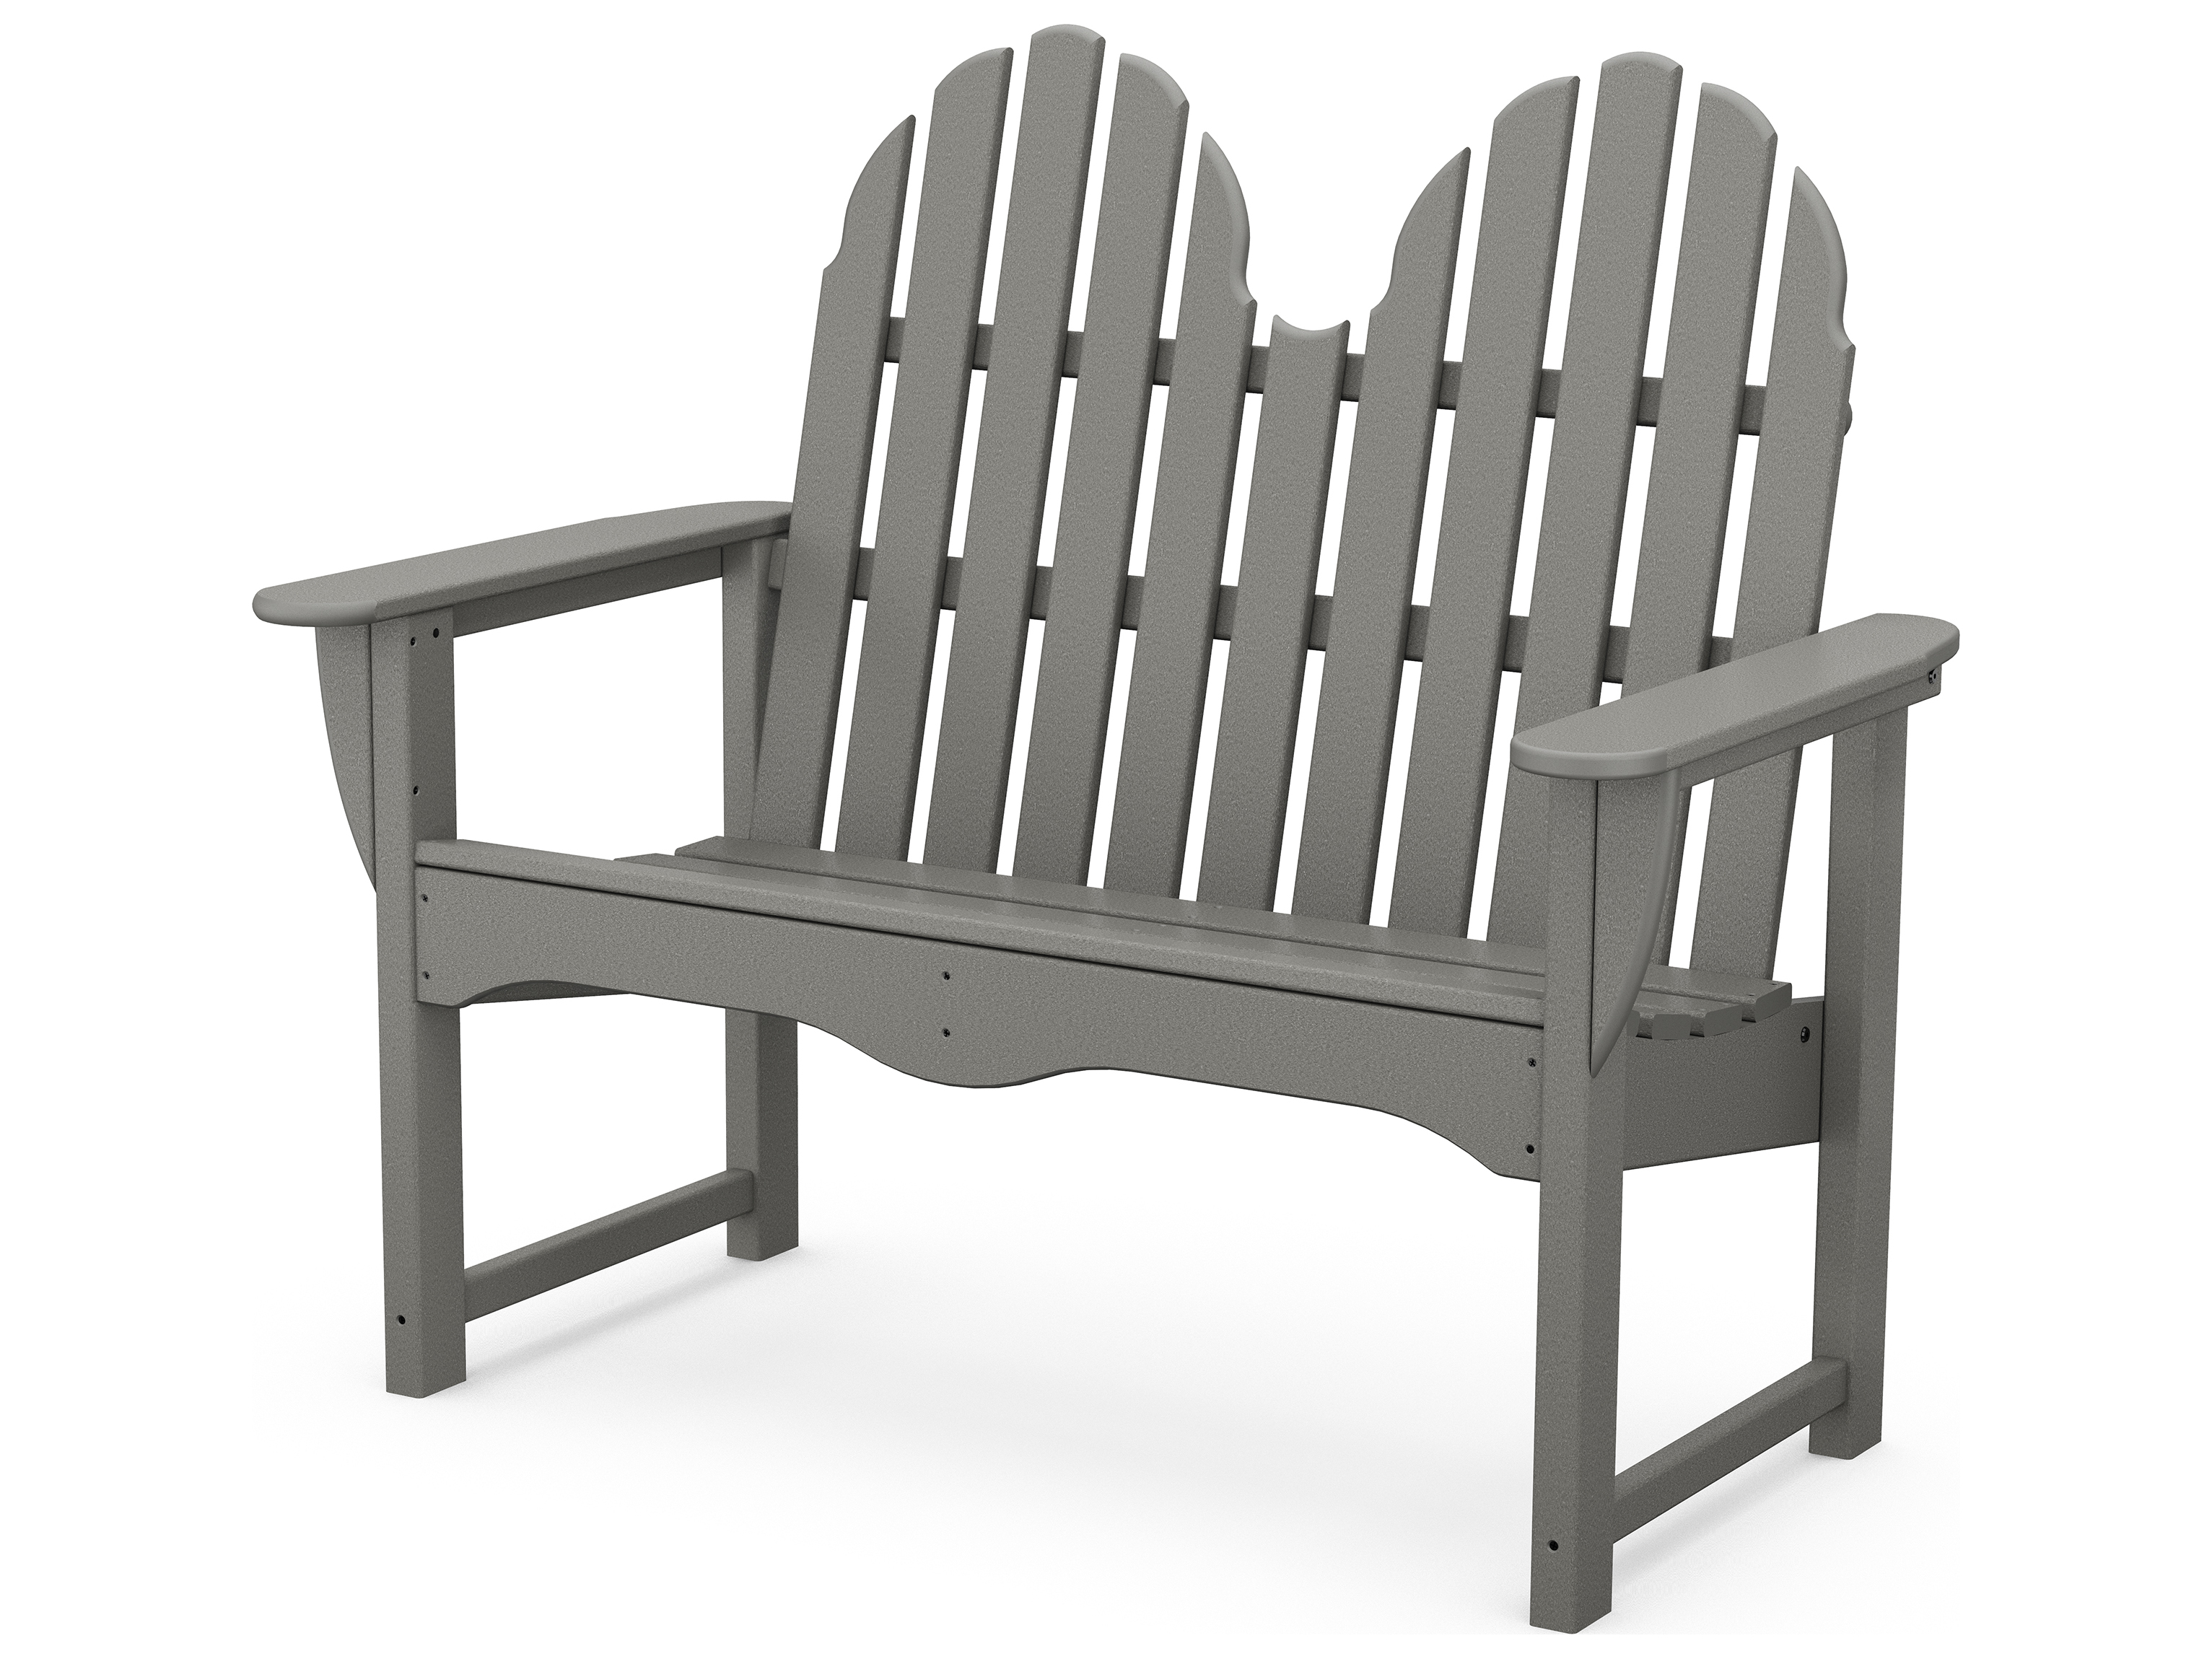 Polywood Classic Adirondack Recycled Plastic 48 Bench Adbn 1: polywood bench